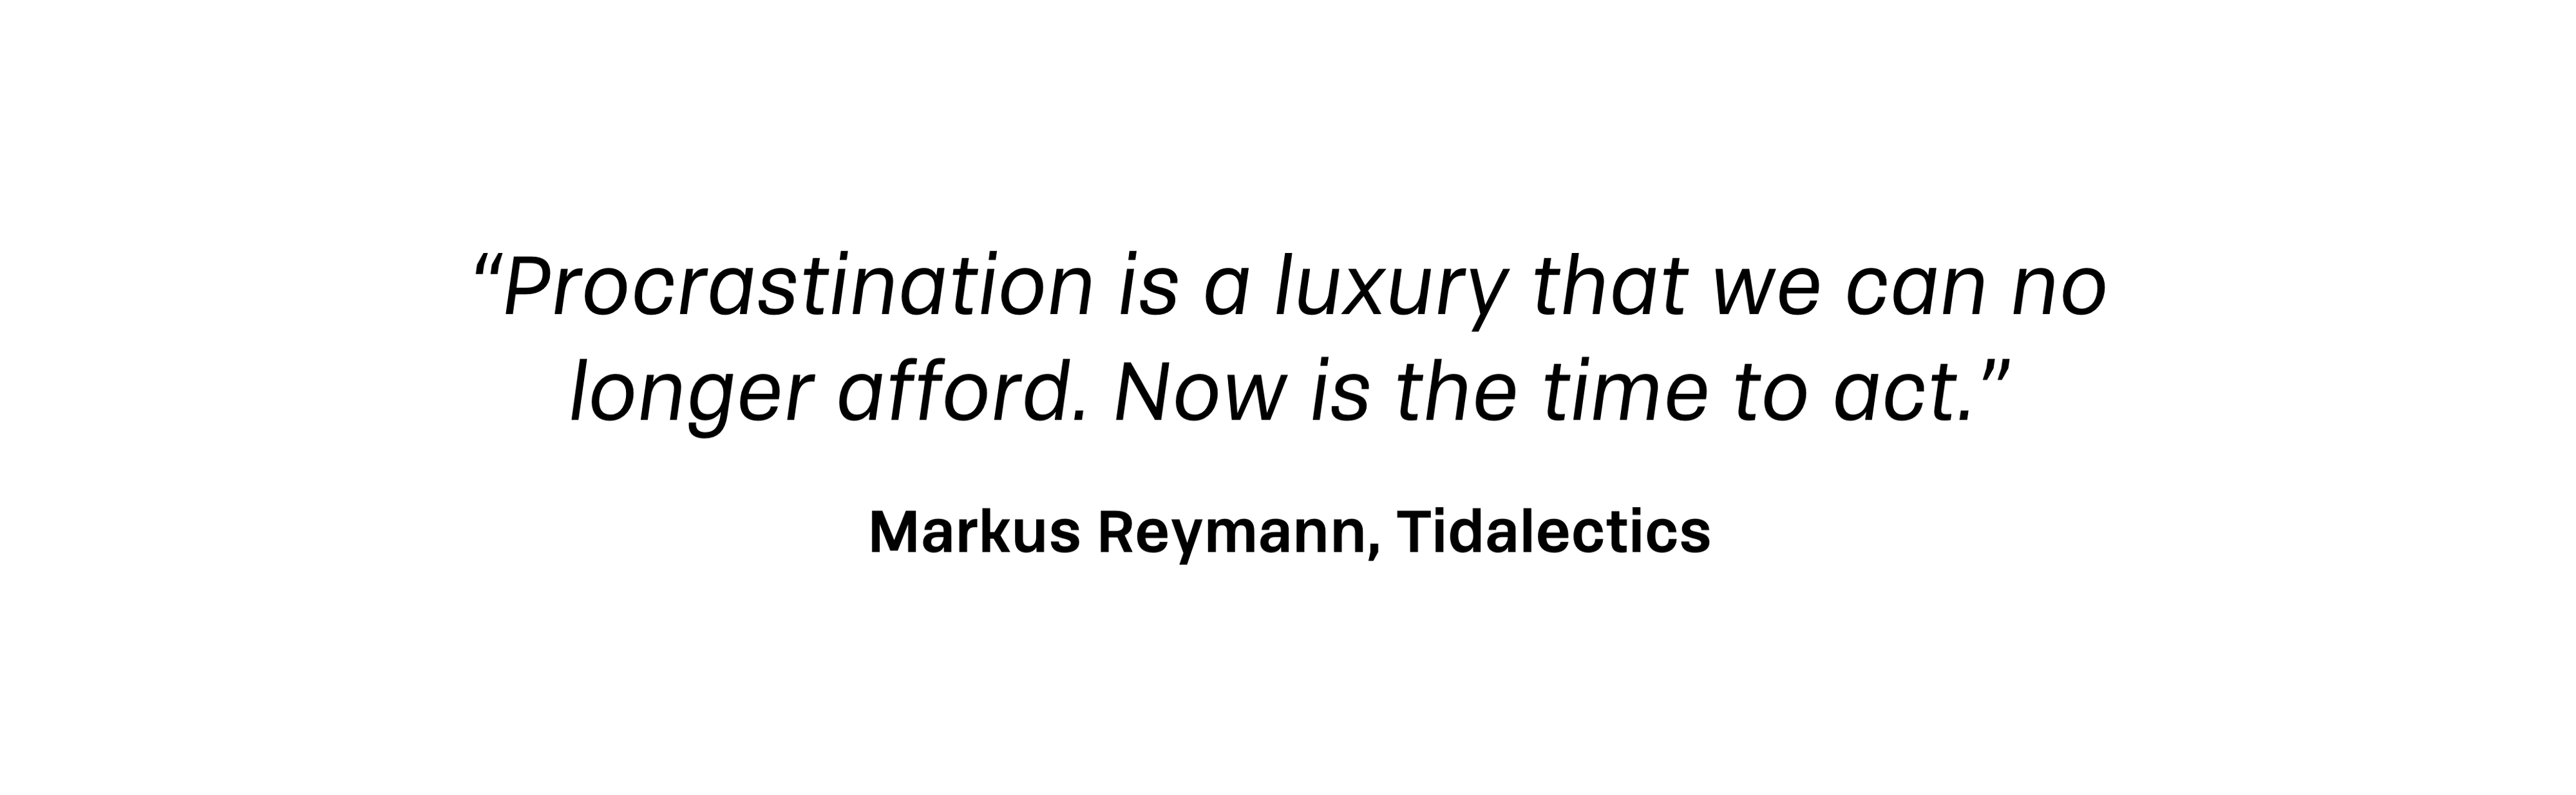 Procrastination is a luxury that we can no longer afford. Now is the time to act.—Markus Reymann, Tidalectics